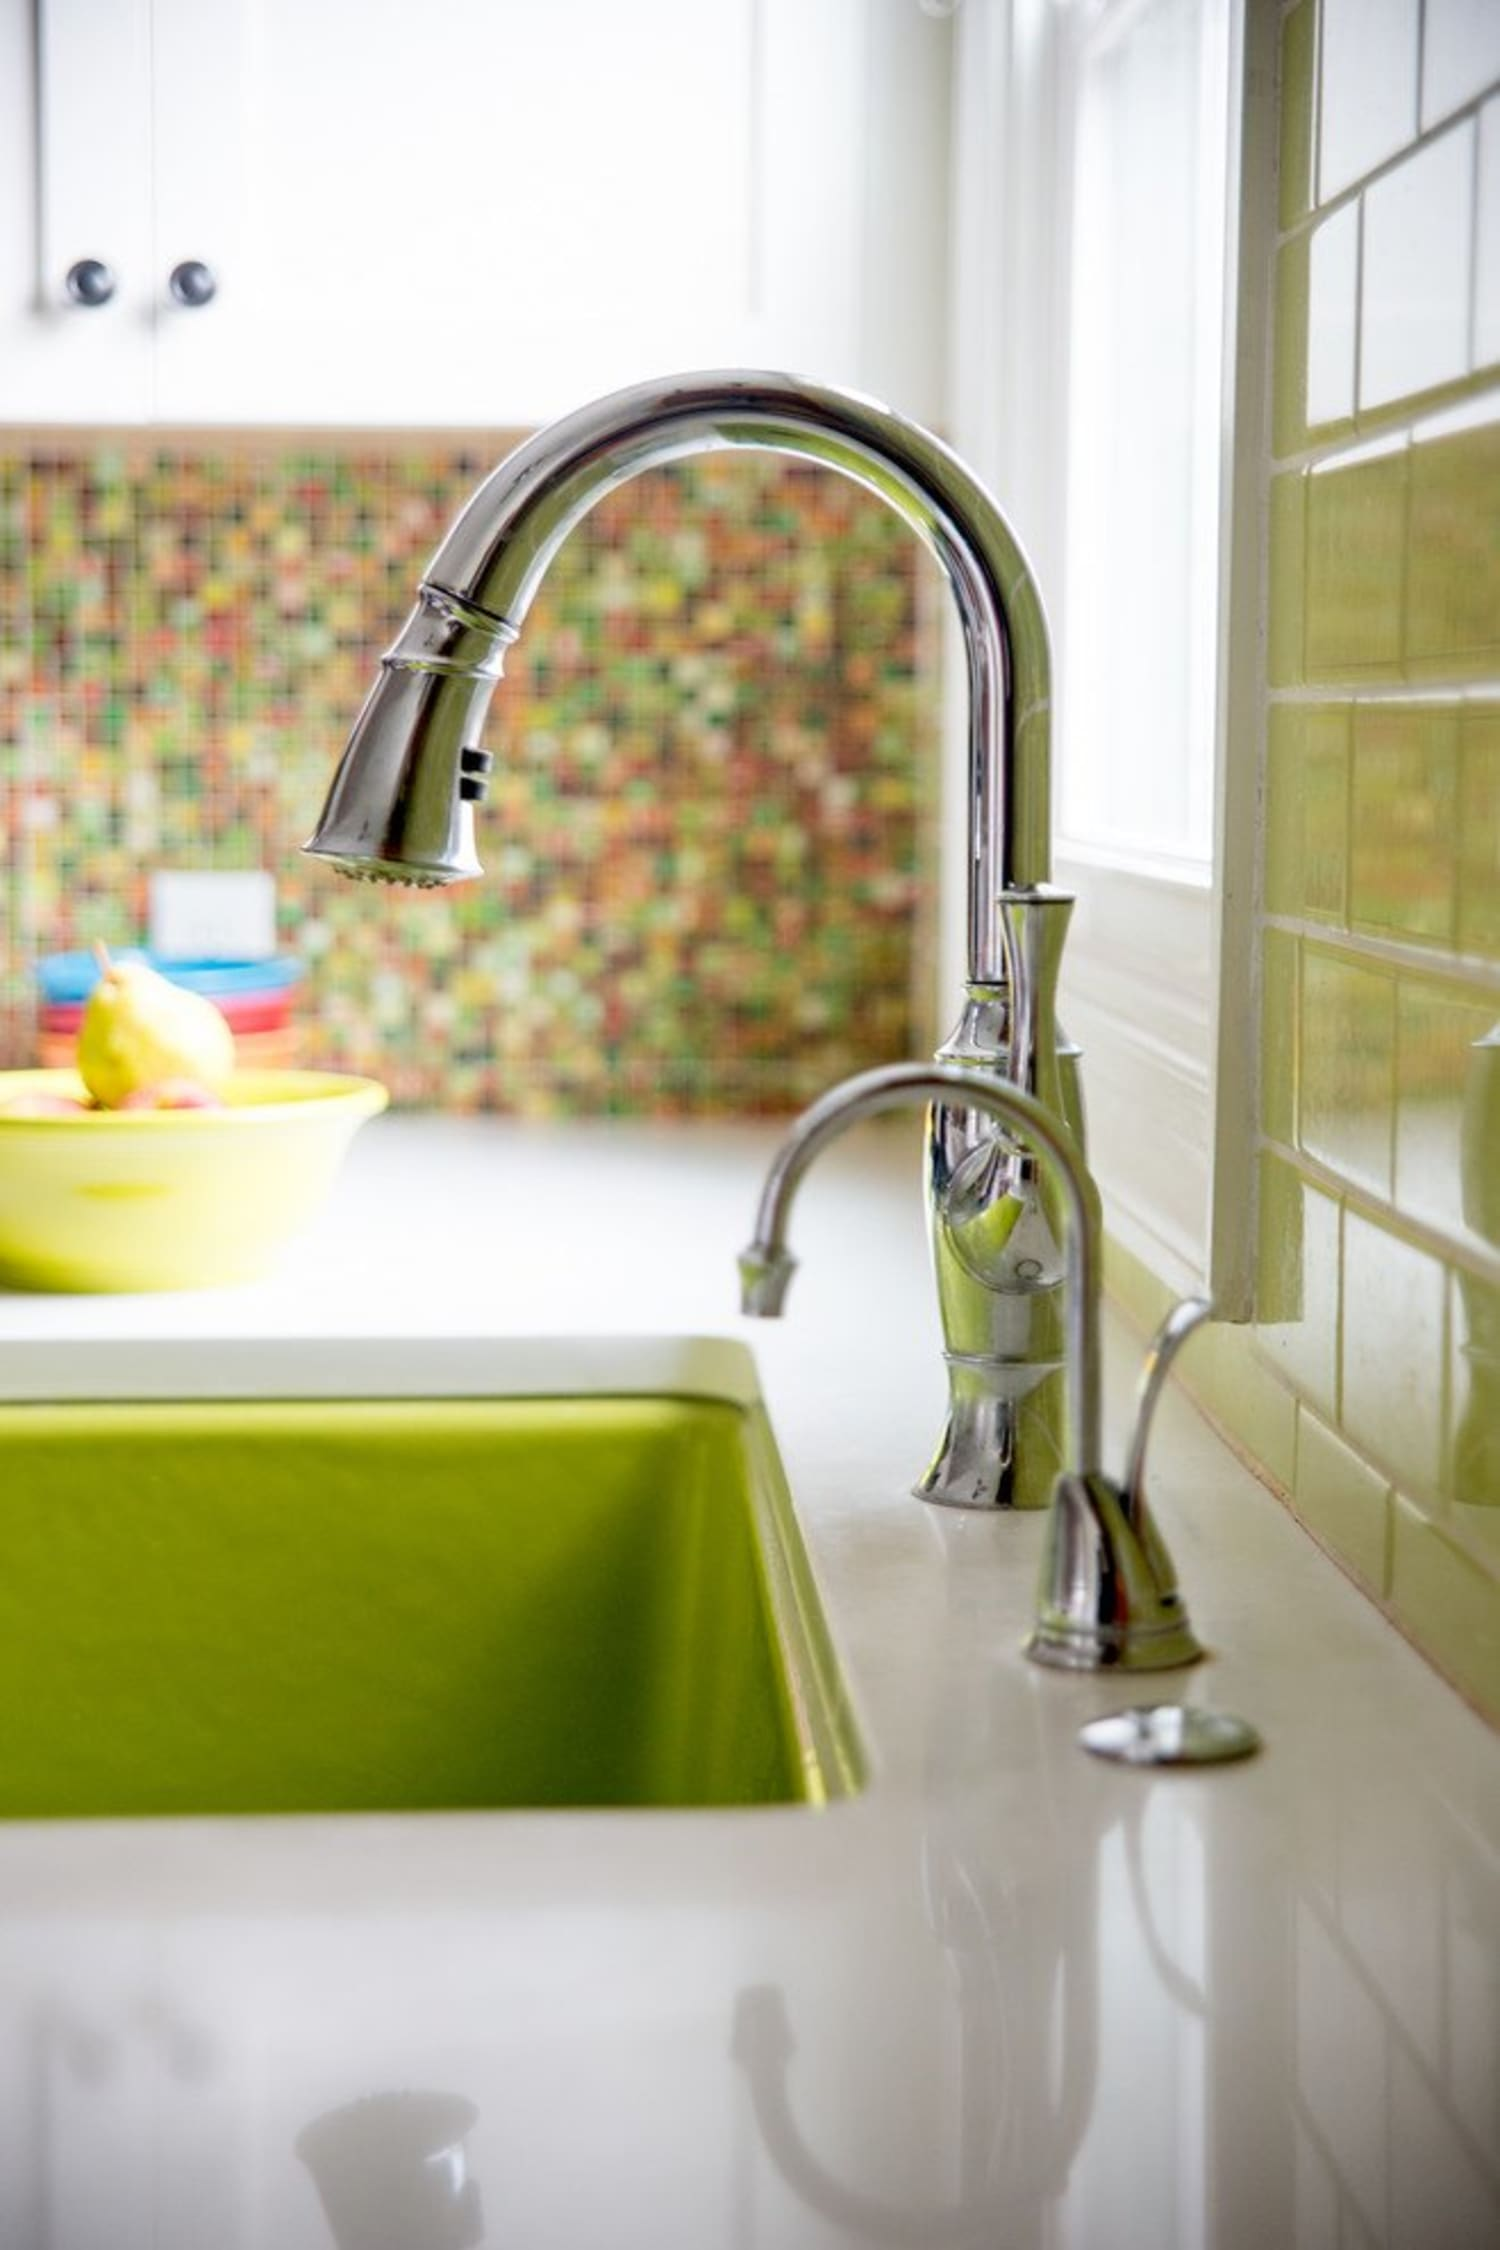 Should You Replace Your Rental Kitchen Sink Faucet Kitchn